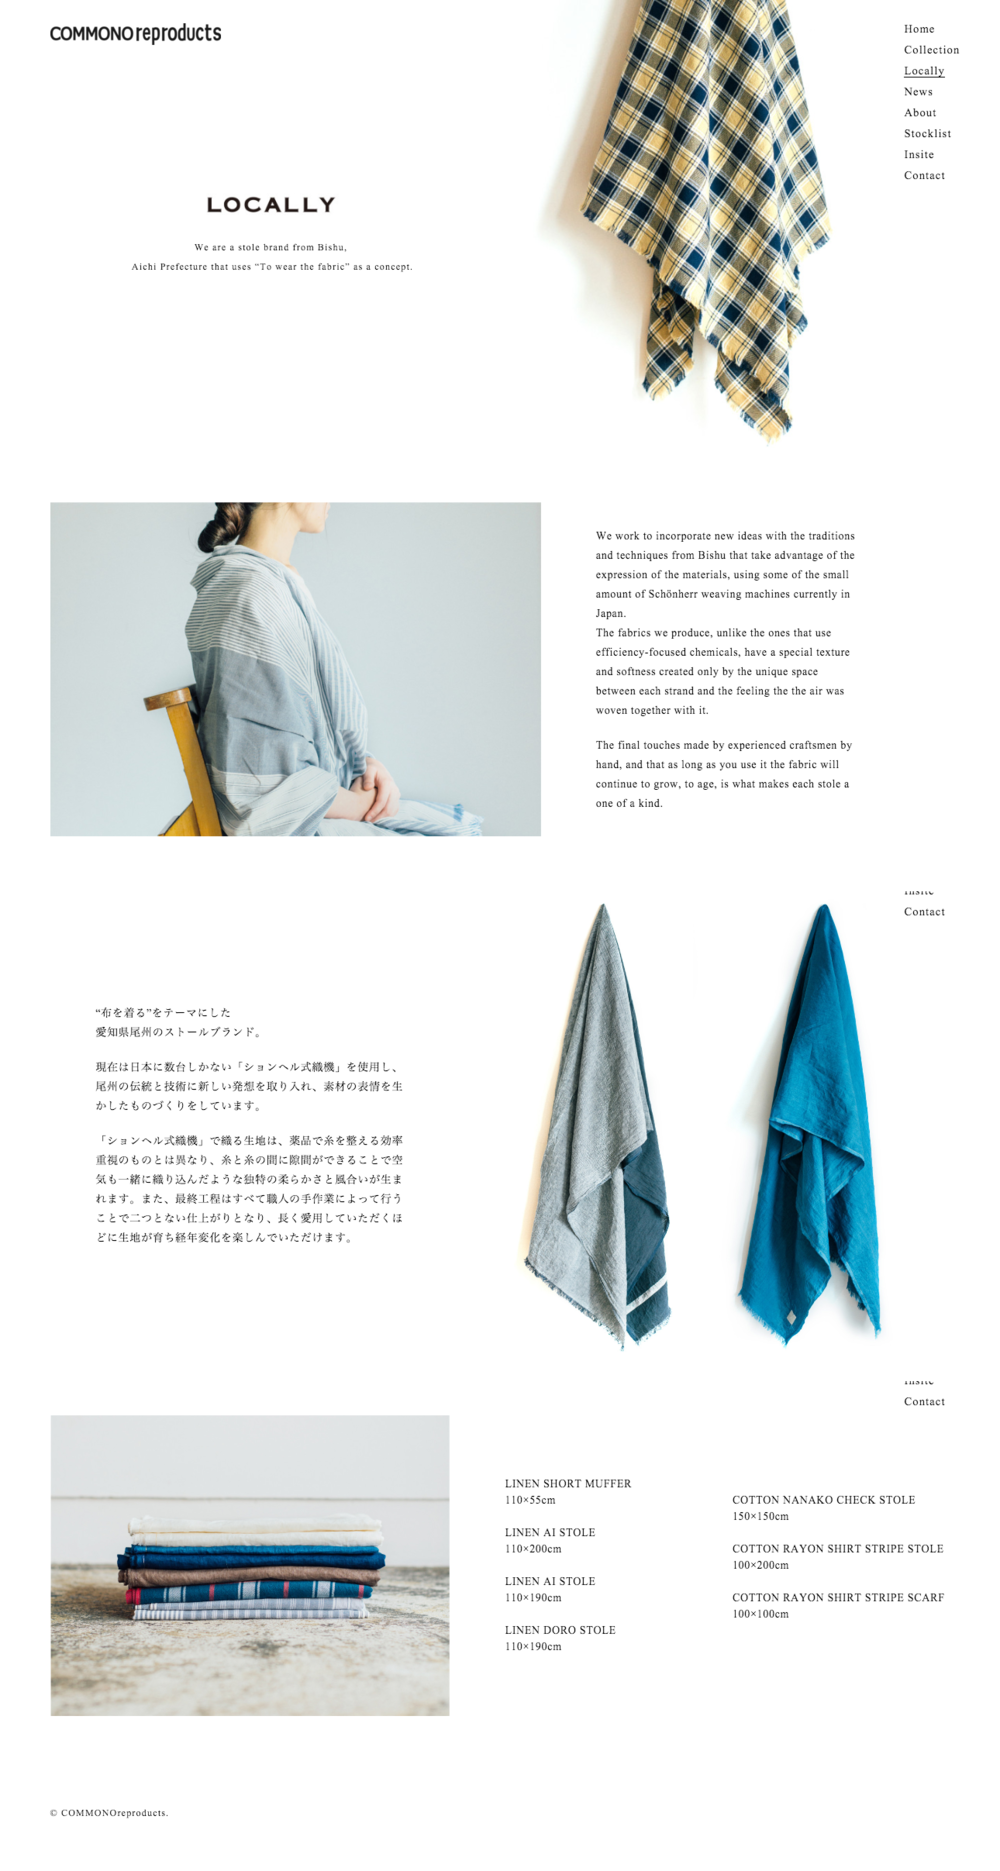 screencapture-commonoreproducts-com-home-locally-1454994353291.png